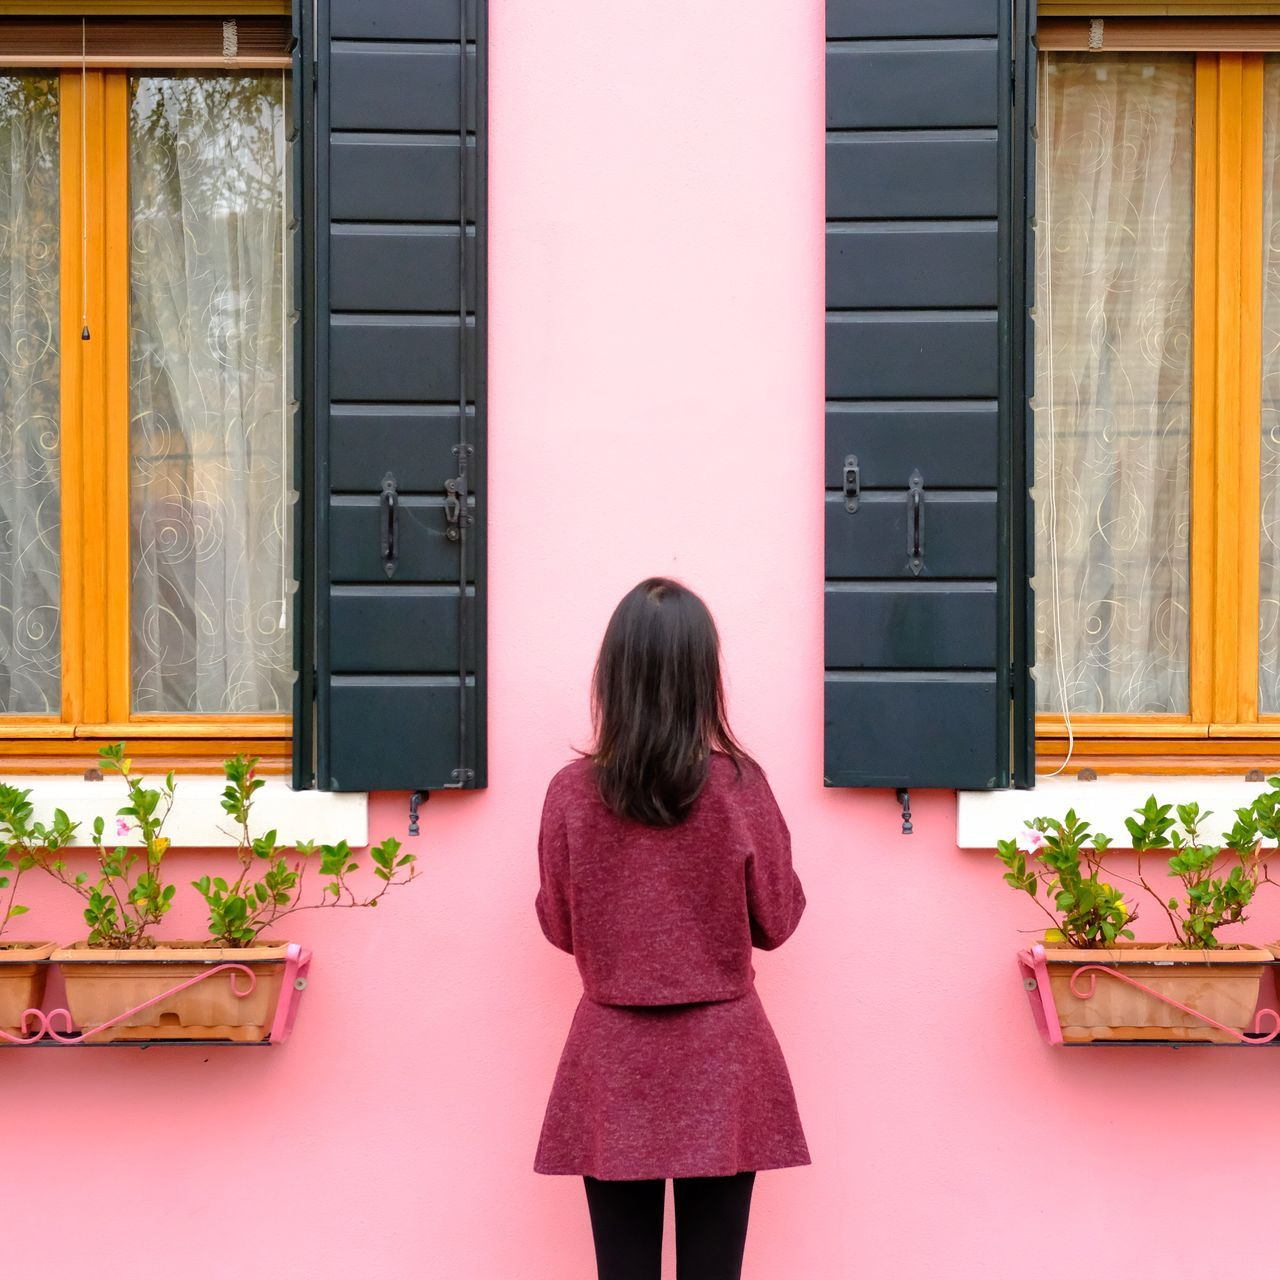 Beautiful stock photos of spring, rear view, one person, long hair, one young woman only